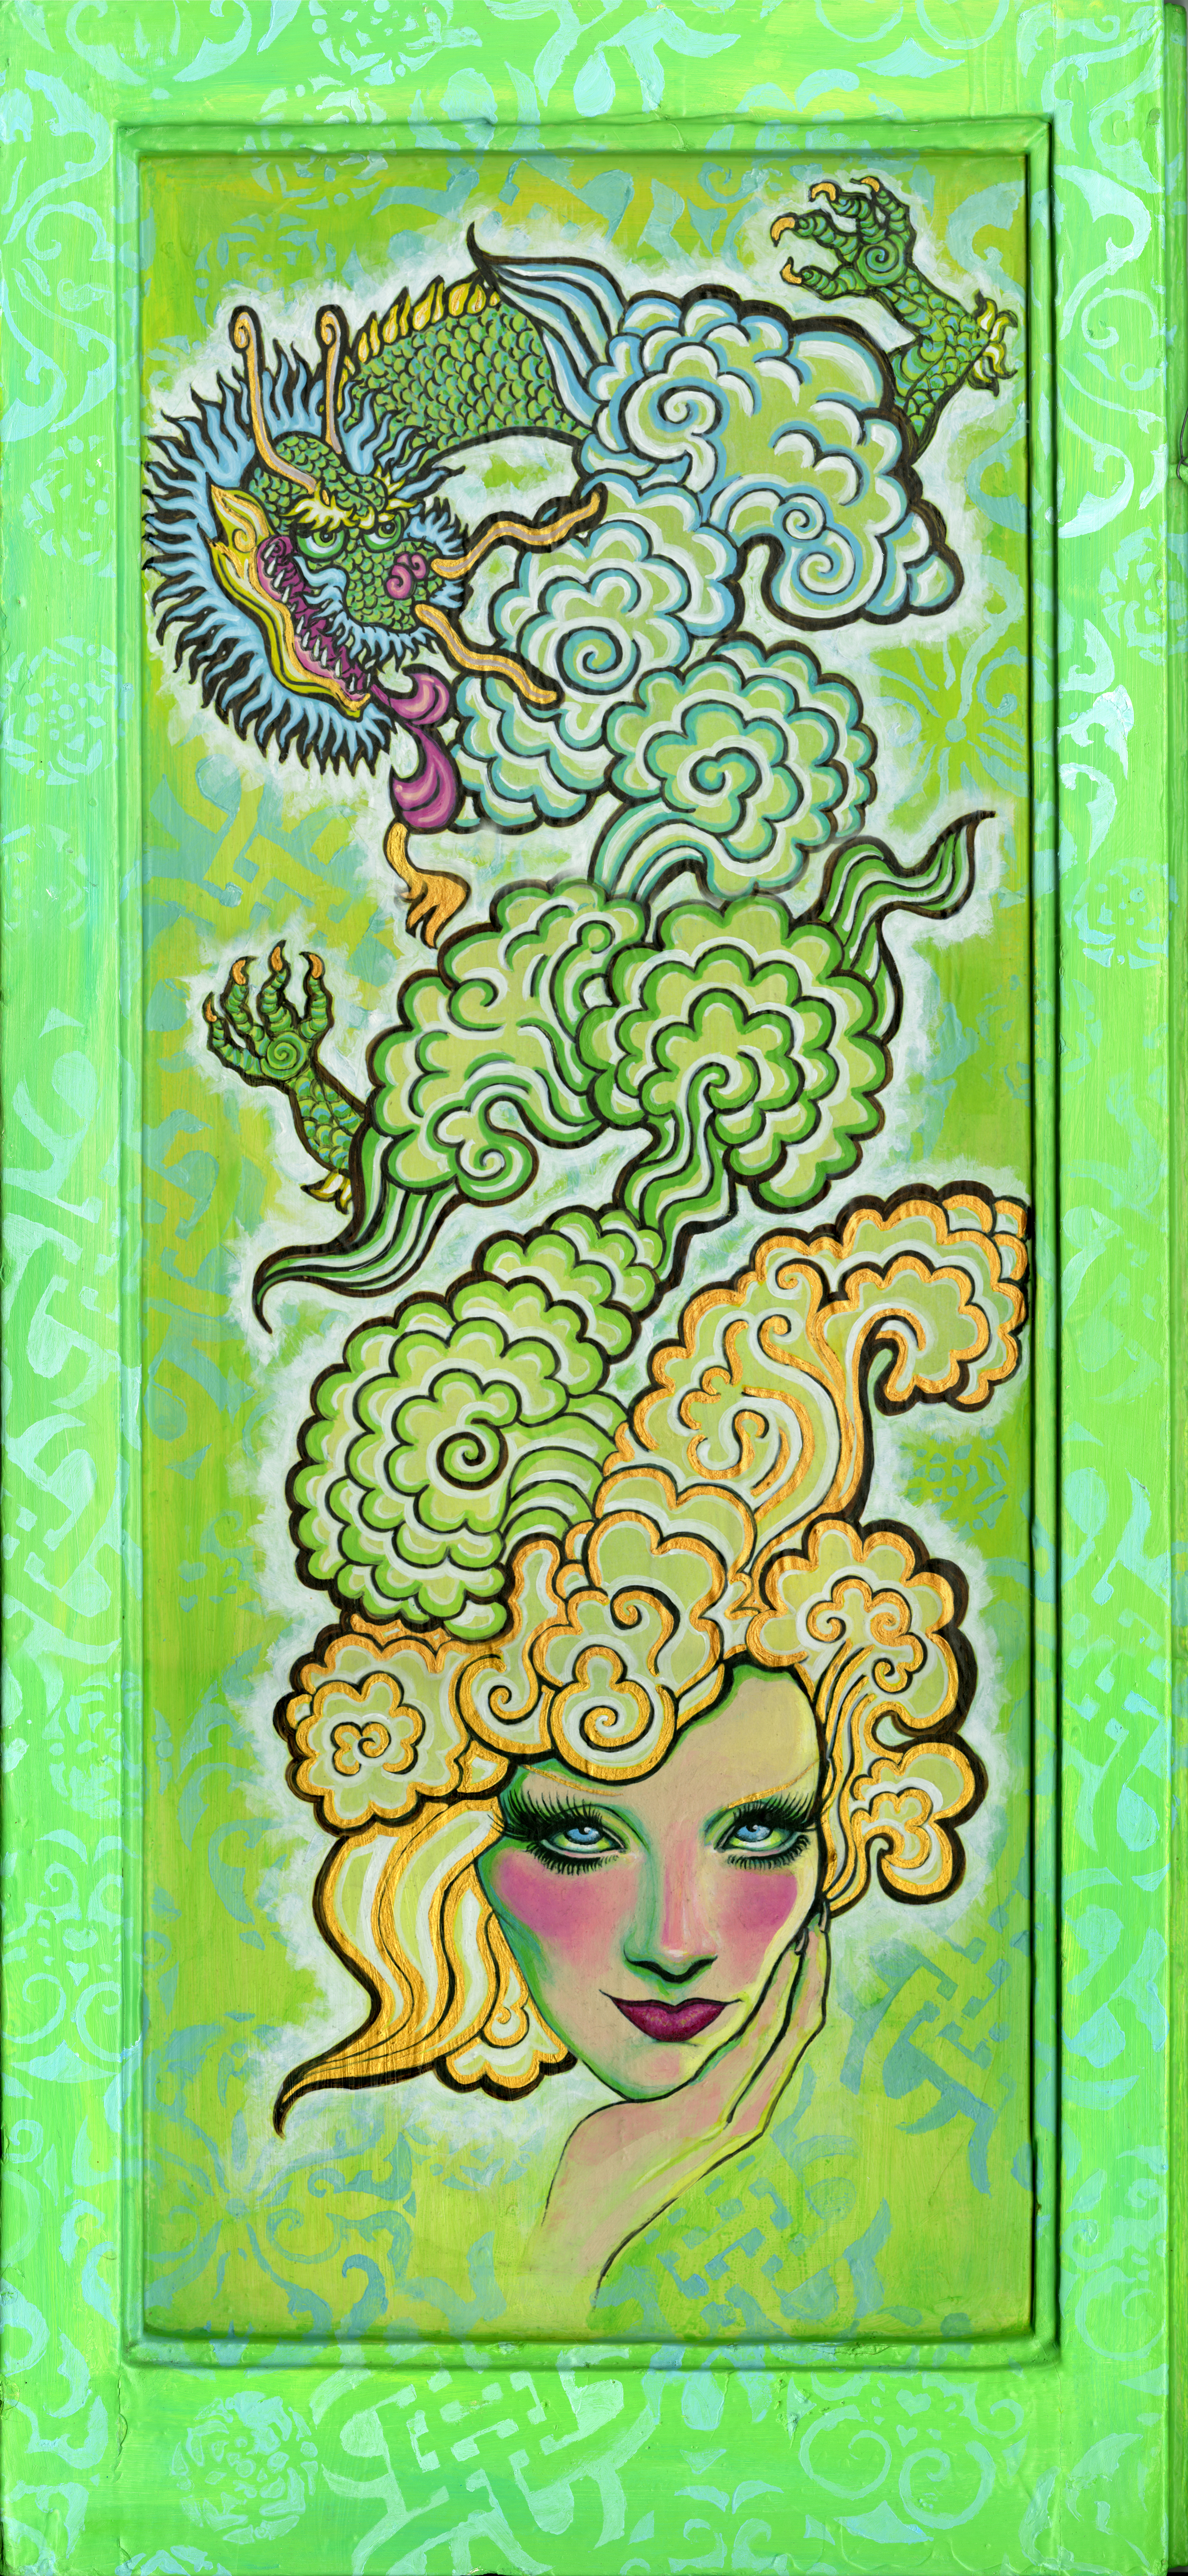 The Dreams of Shanghai Lily (front) by pinupsbykeeegan